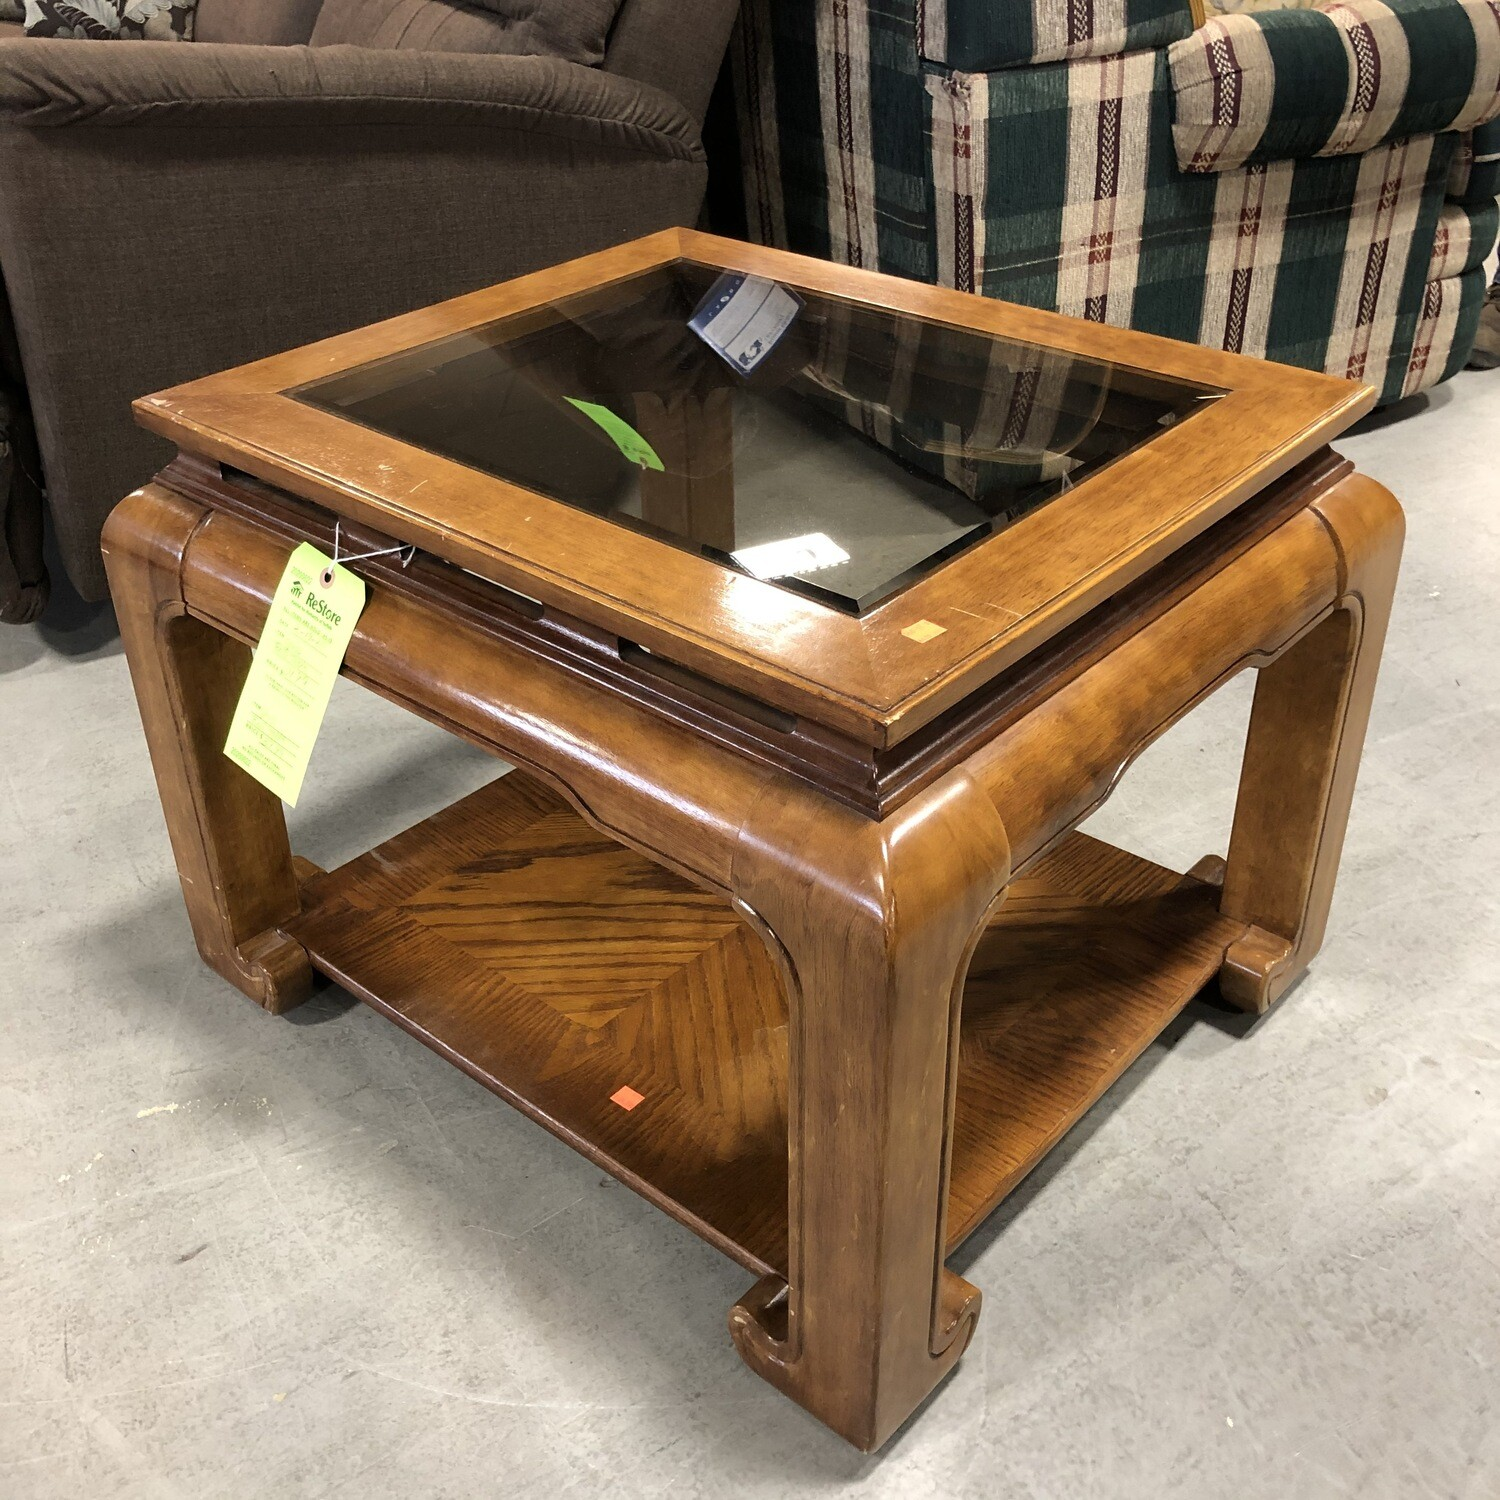 Wooden End Table with Glass Top